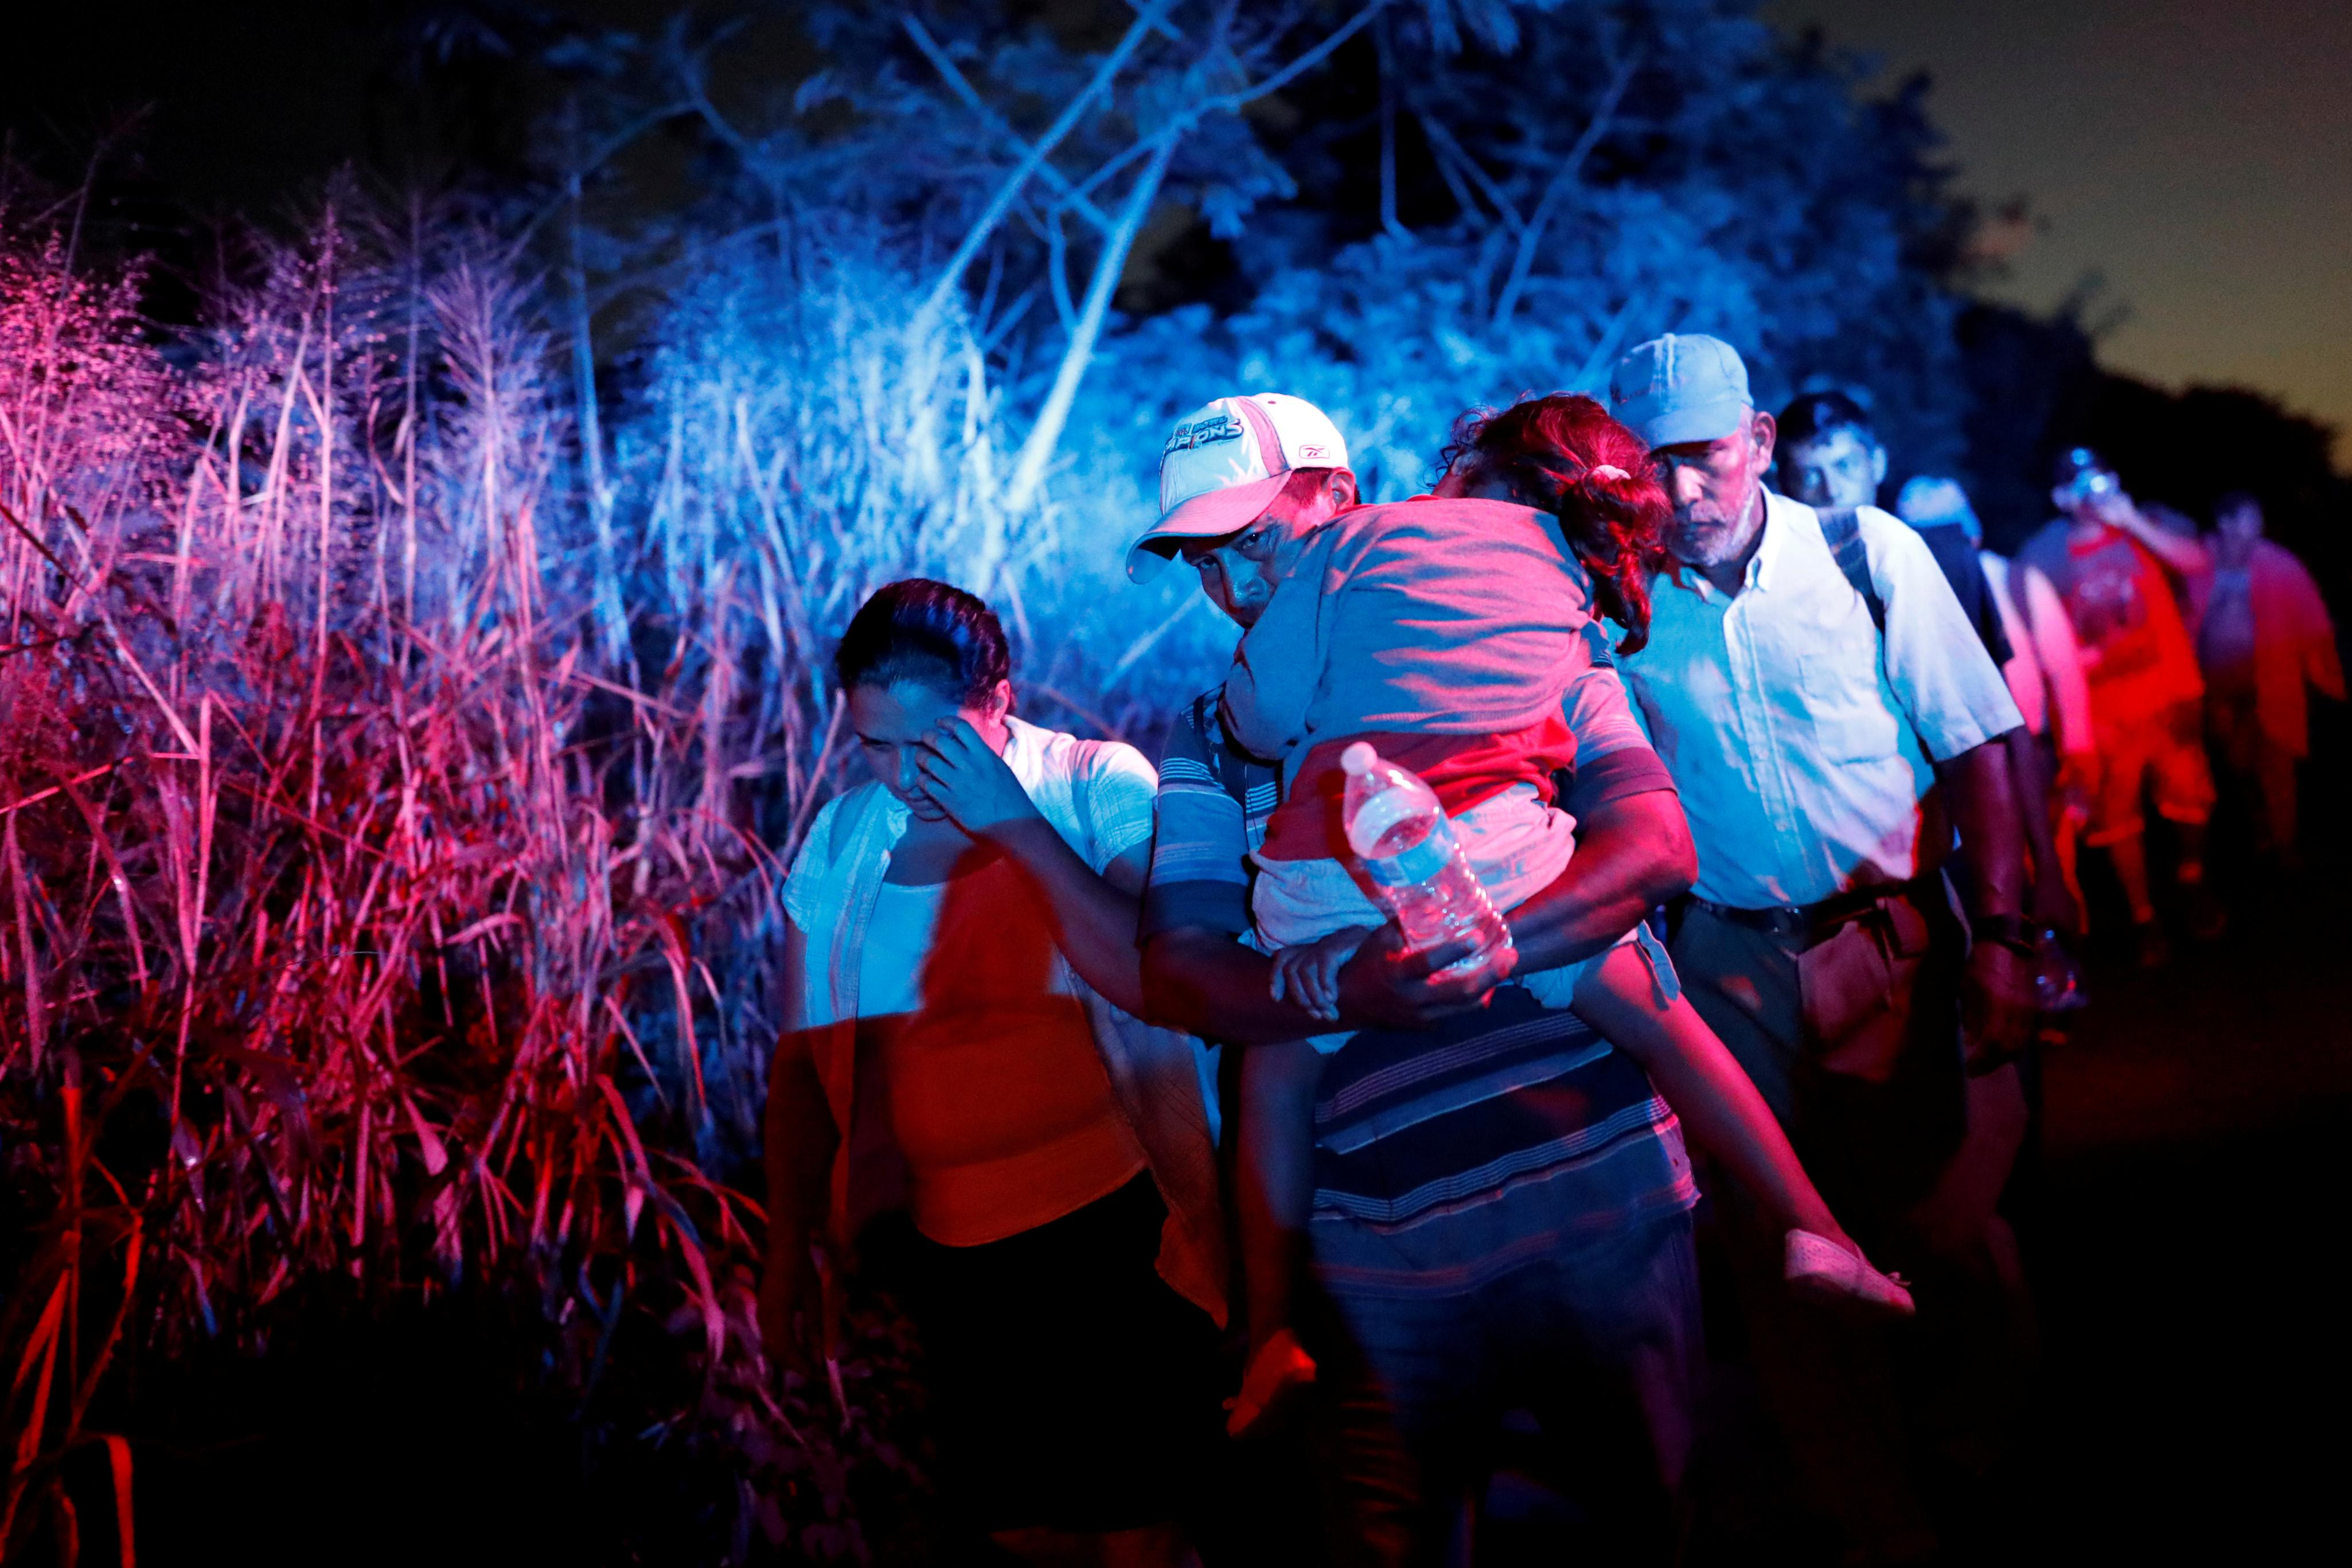 <p>Migrants, part of a caravan traveling to the U.S., walk along the road to Huixtla, near Tapachula, Mexico, Oct. 31, 2018. (Photo: Carlos Garcia Rawlins/Reuters) </p>